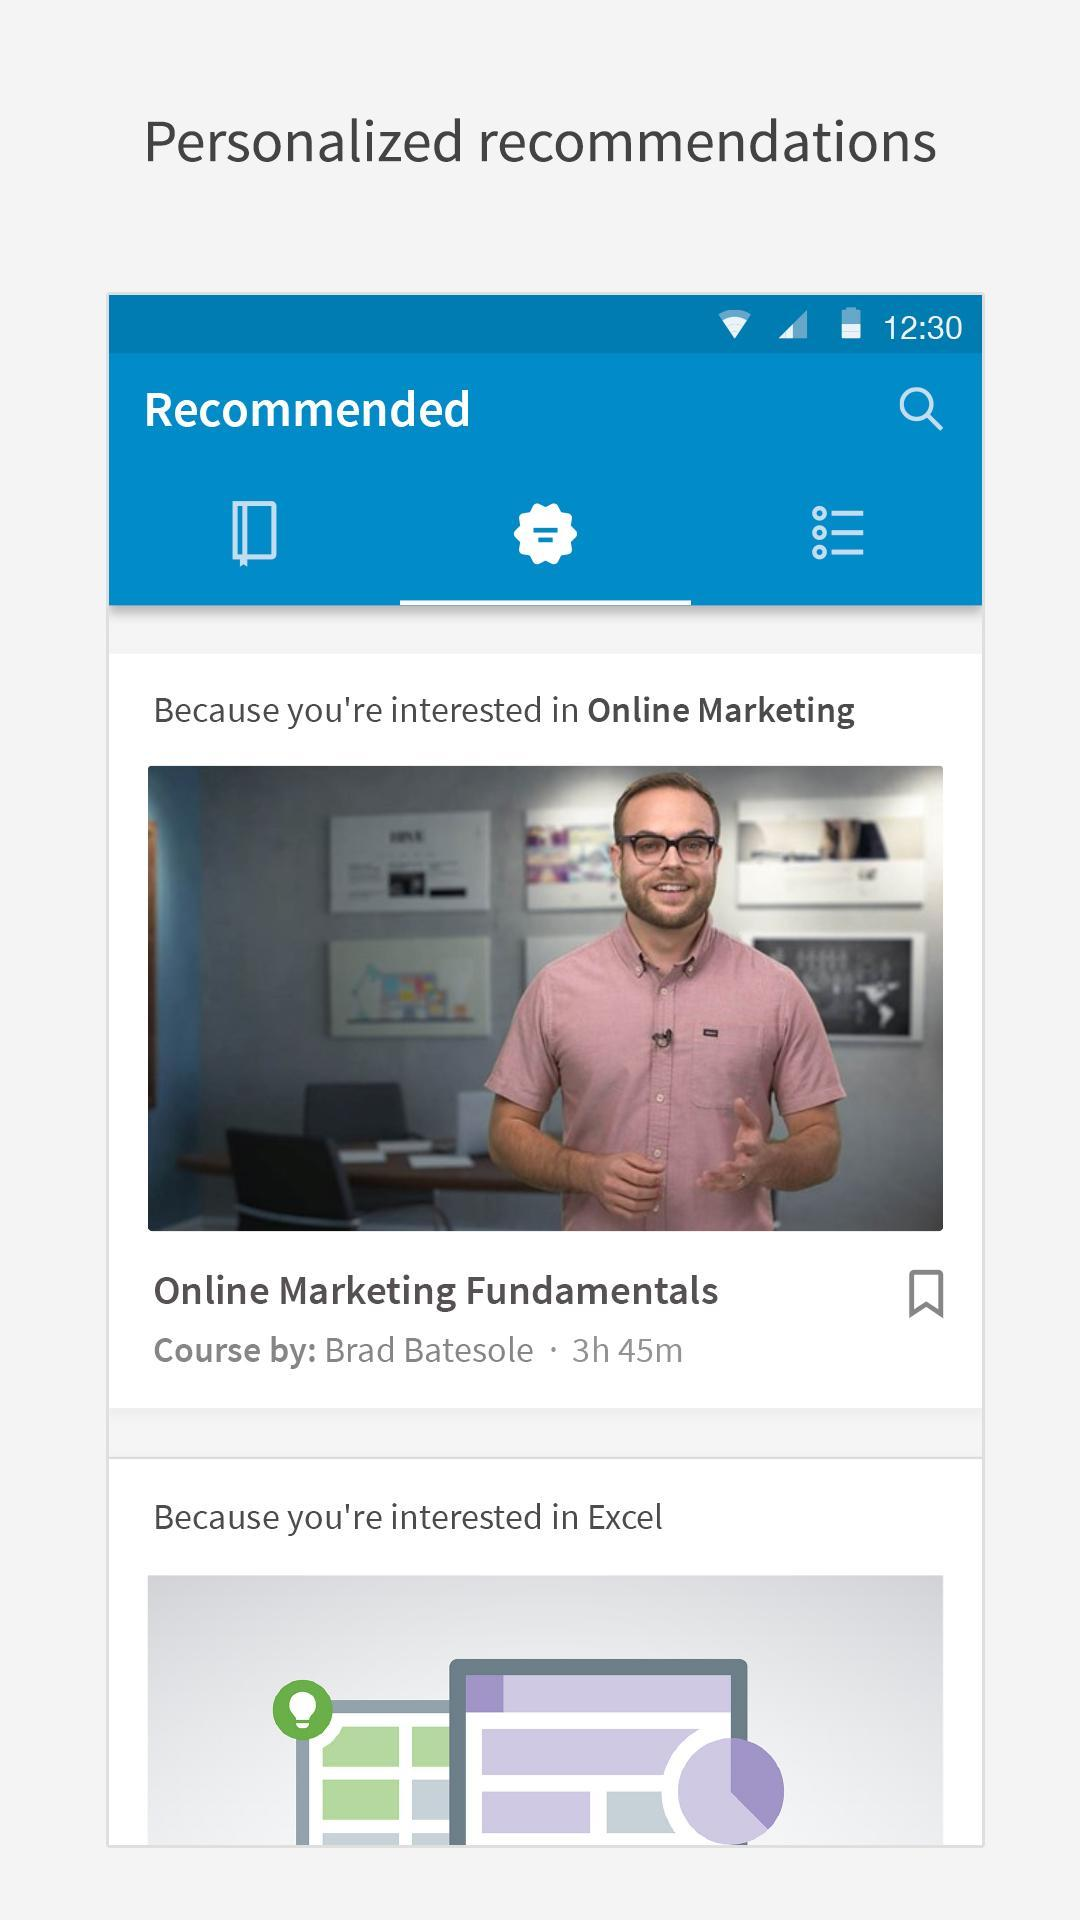 LinkedIn Learning: Online Courses to Learn Skills for